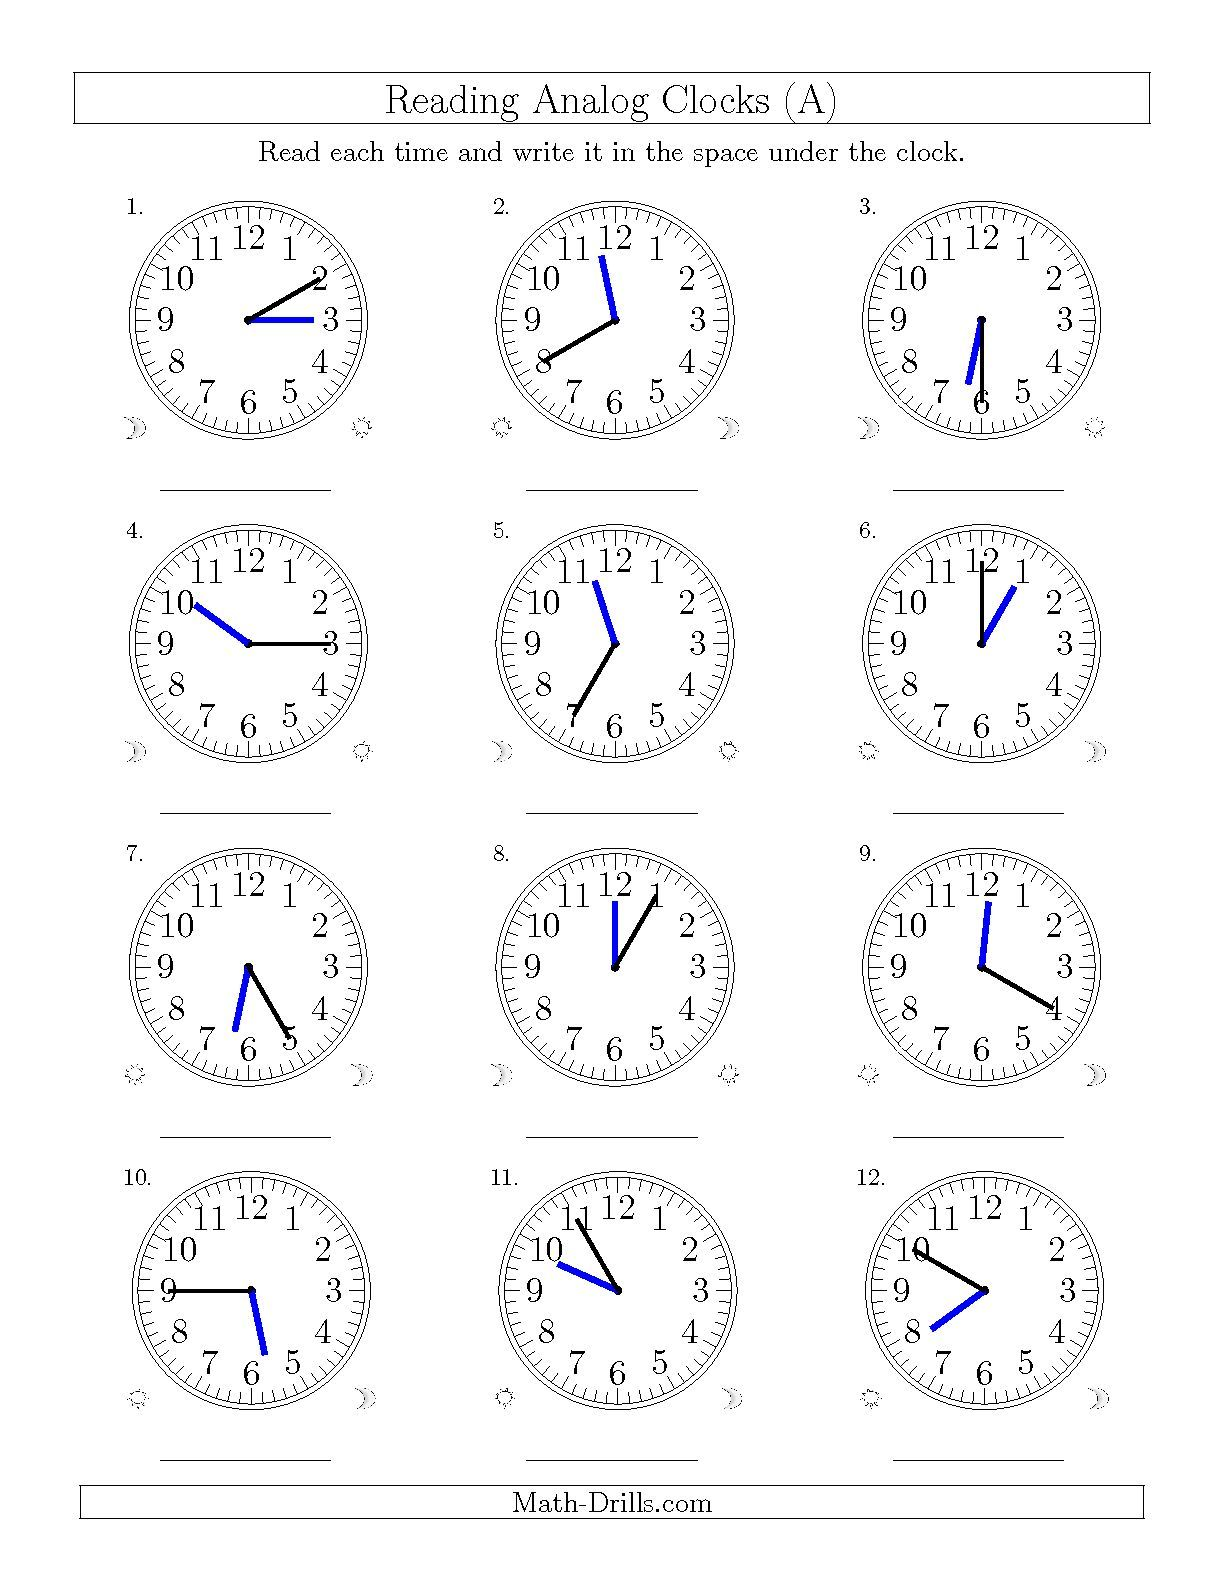 medium resolution of The Reading Time on 12 Hour Analog Clocks in 5 Minute Intervals (A) math  worksheet from the Time Wor…   Time worksheets